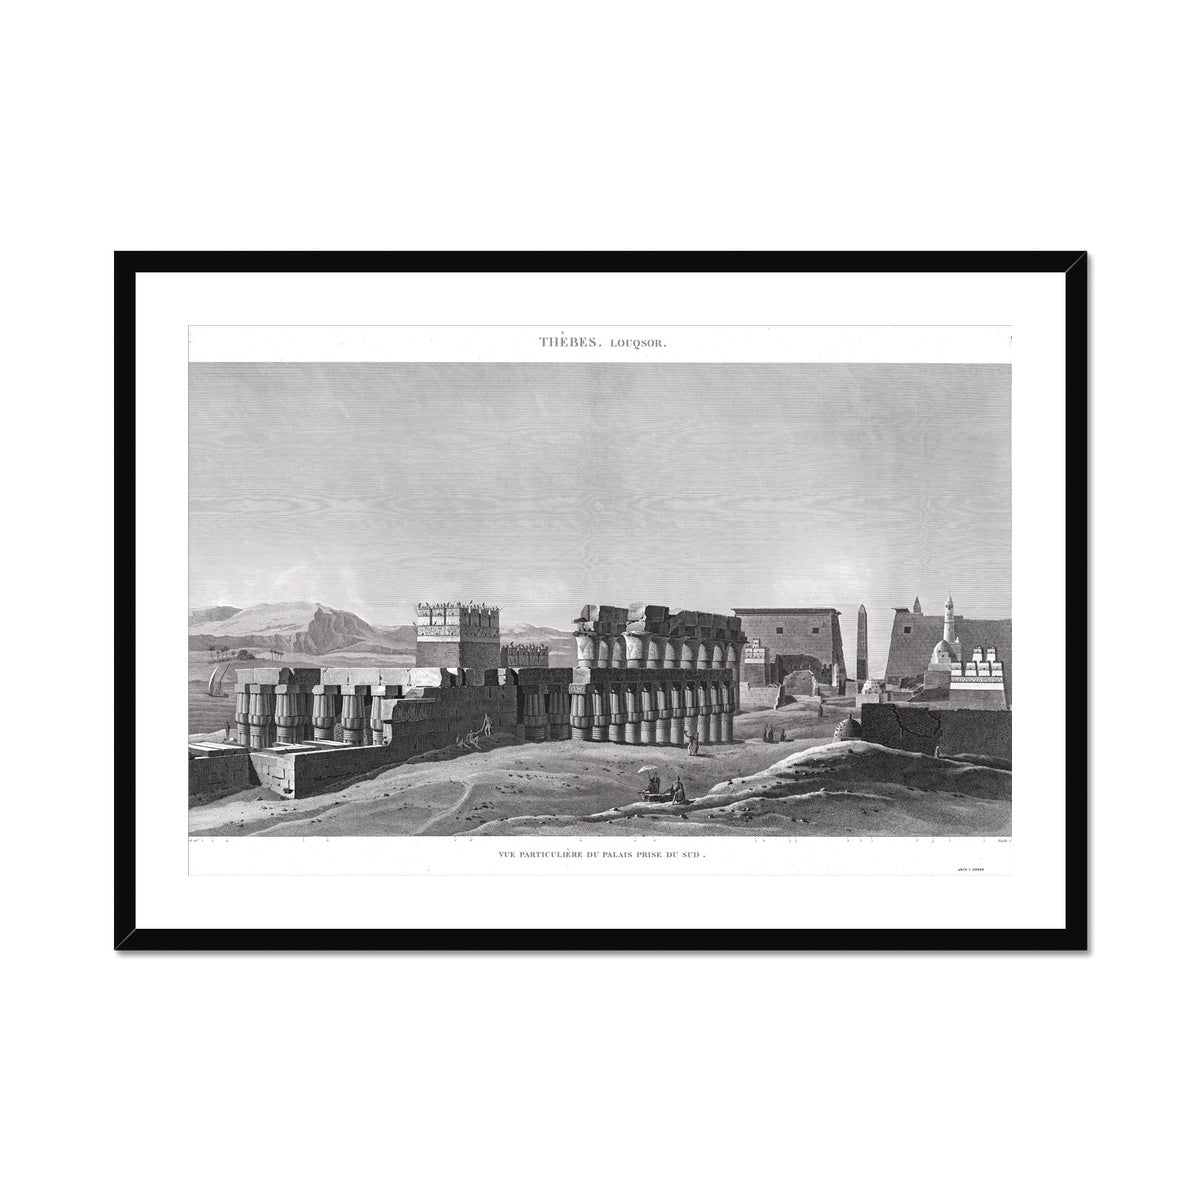 View of the Palace From the South - Luxor - Thebes Egypt -  Framed & Mounted Print